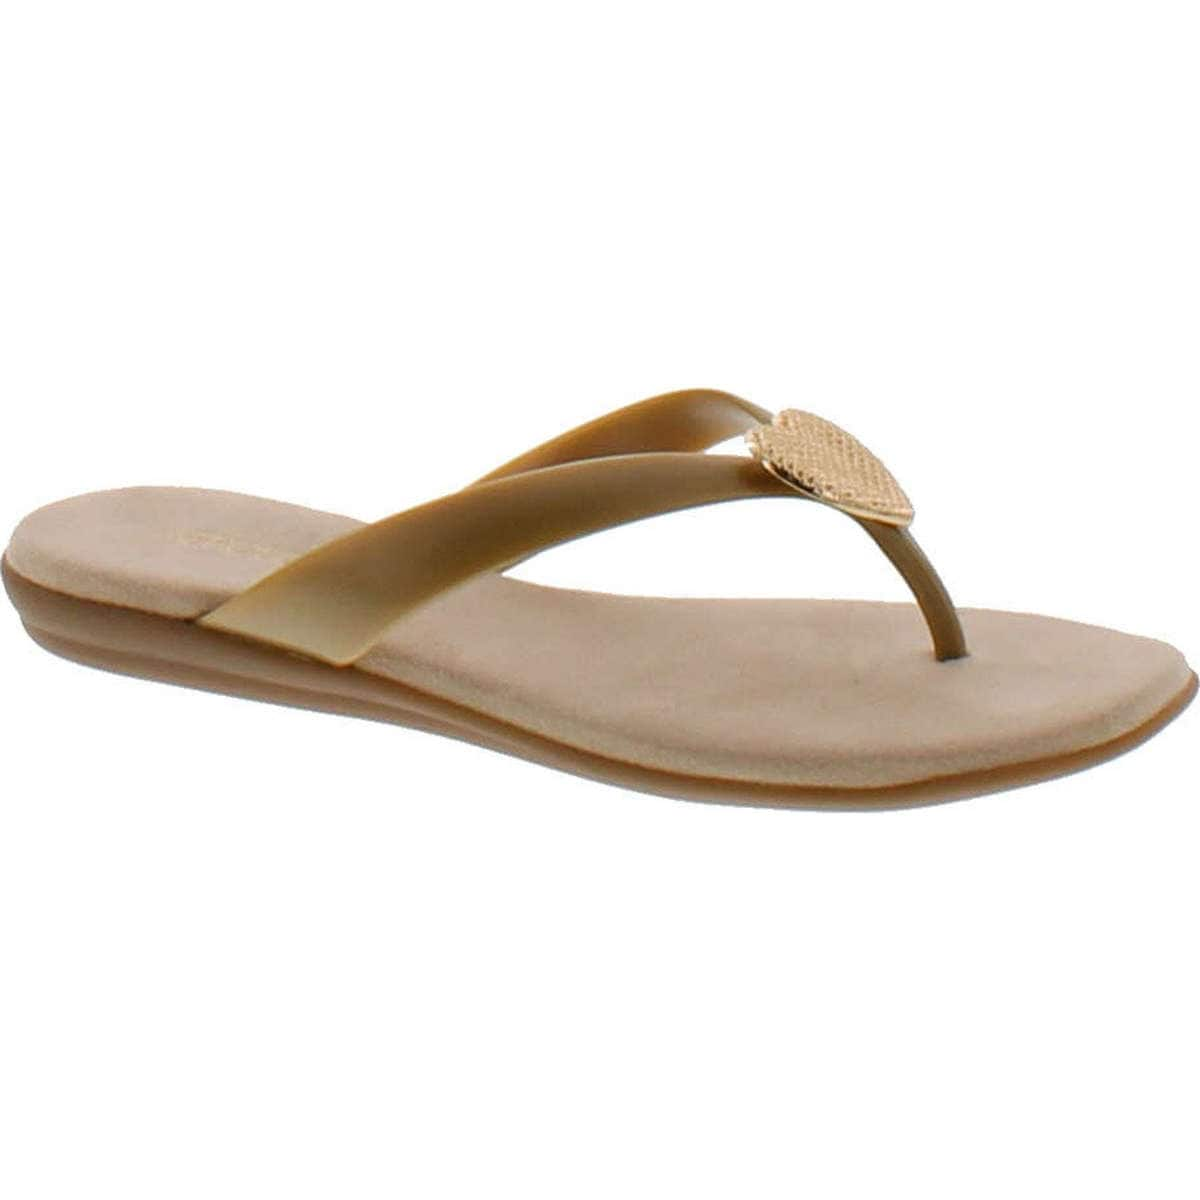 854bdc0ae21273 Top Rated - Gold Women s Shoes